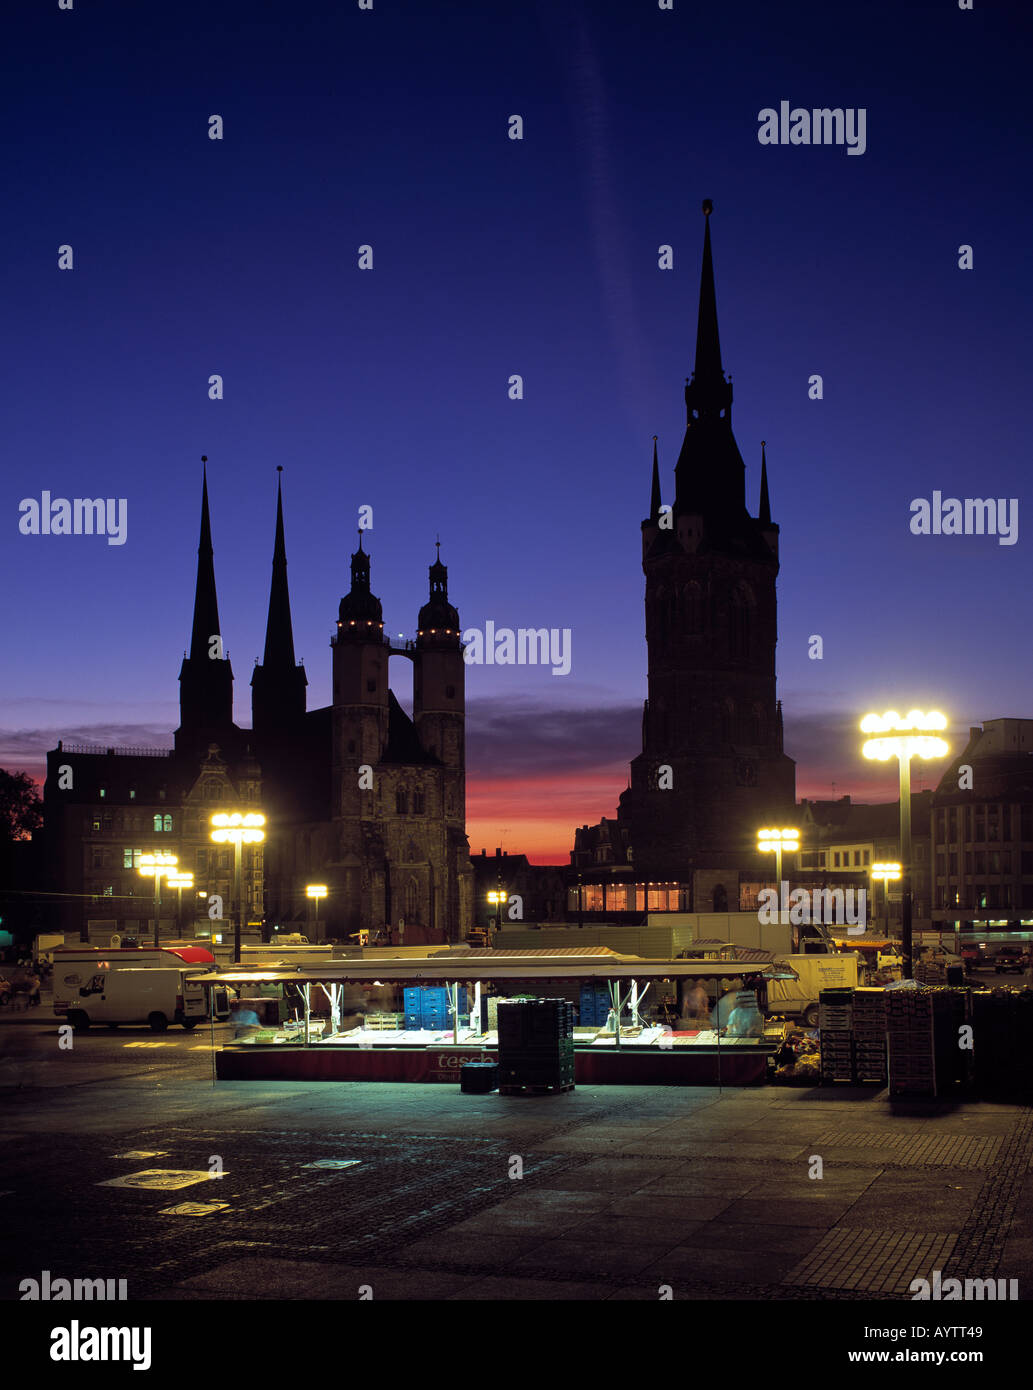 marktplatz marktkirche st marien kirche roter turm stadtturm nacht beleuchtet halle. Black Bedroom Furniture Sets. Home Design Ideas